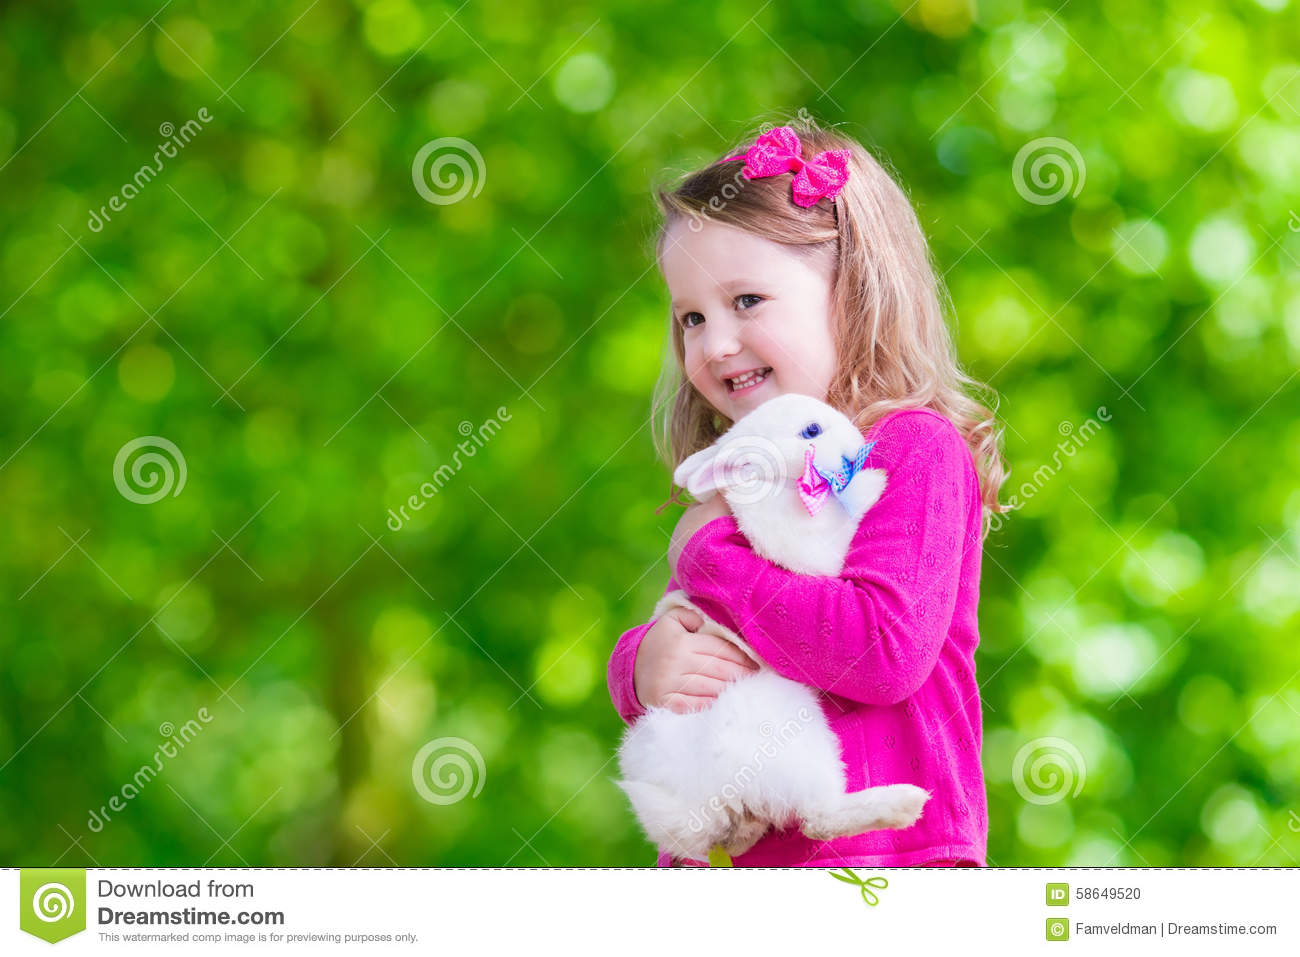 noud girl paly with animals